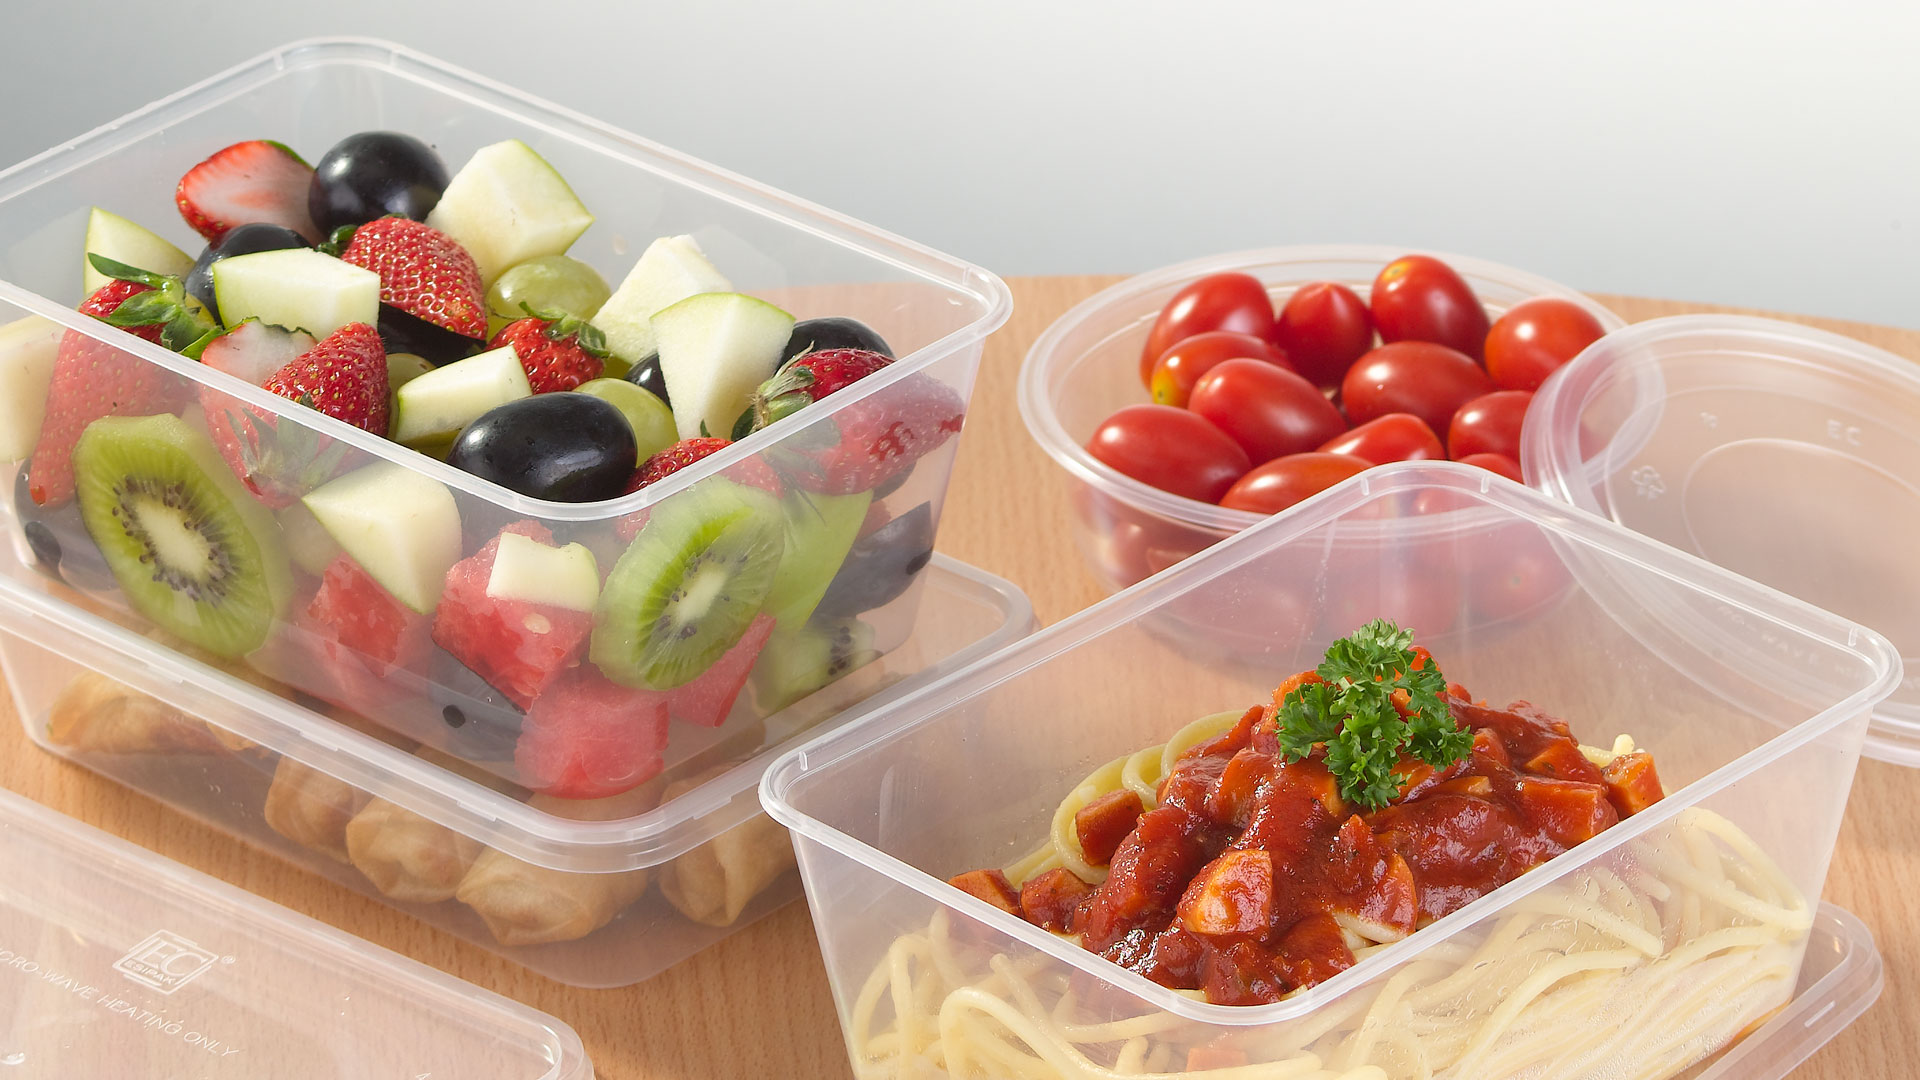 Malaysia Manufacturer for Food Containers I